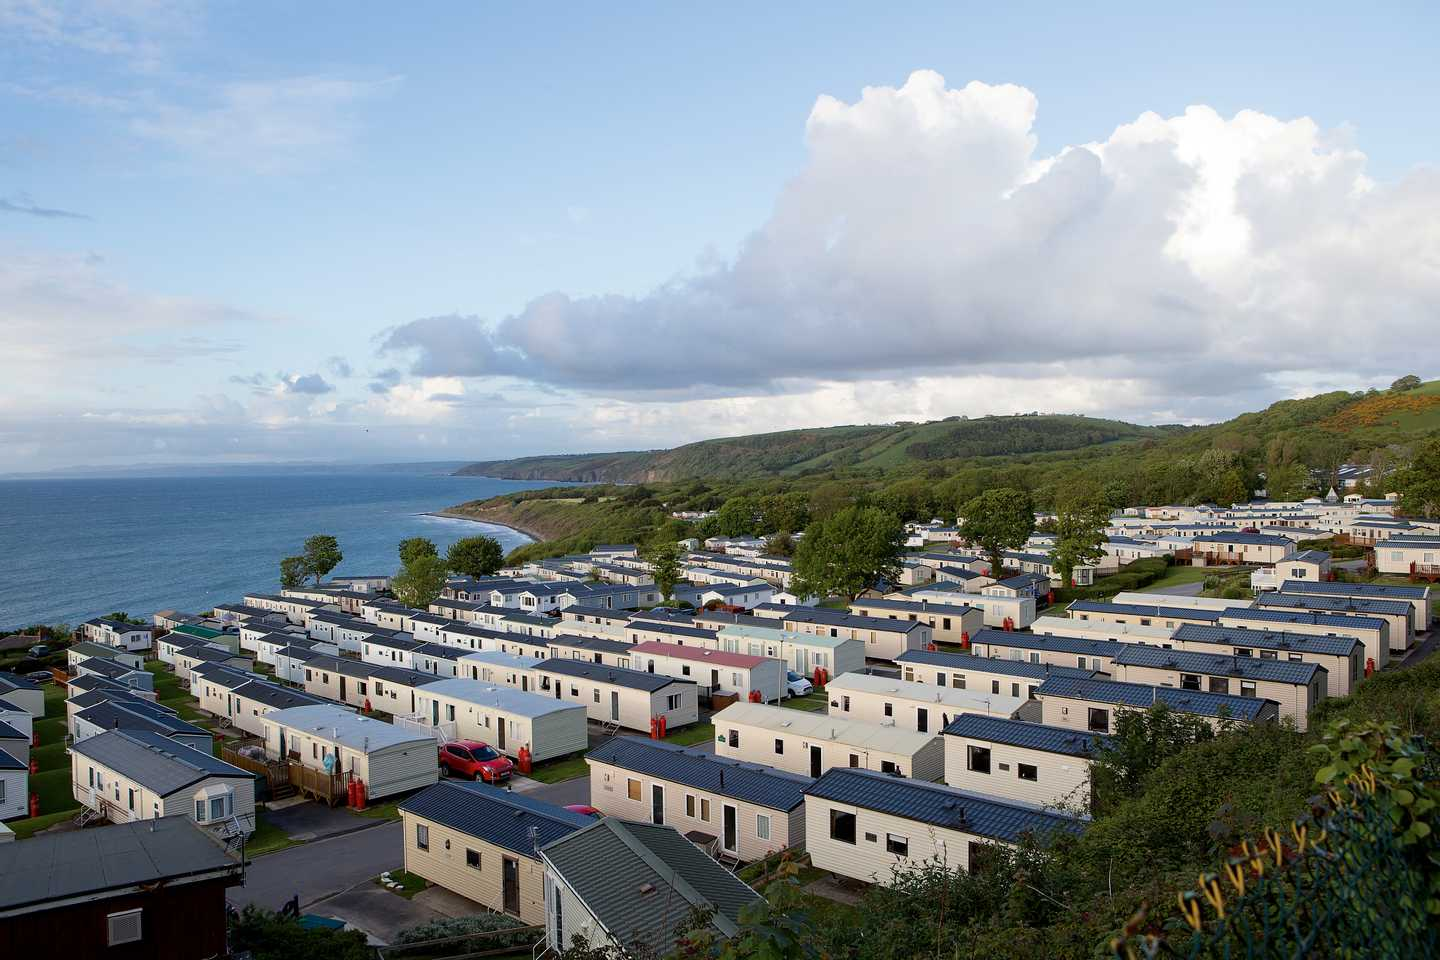 Rows of holiday homes at Quay West